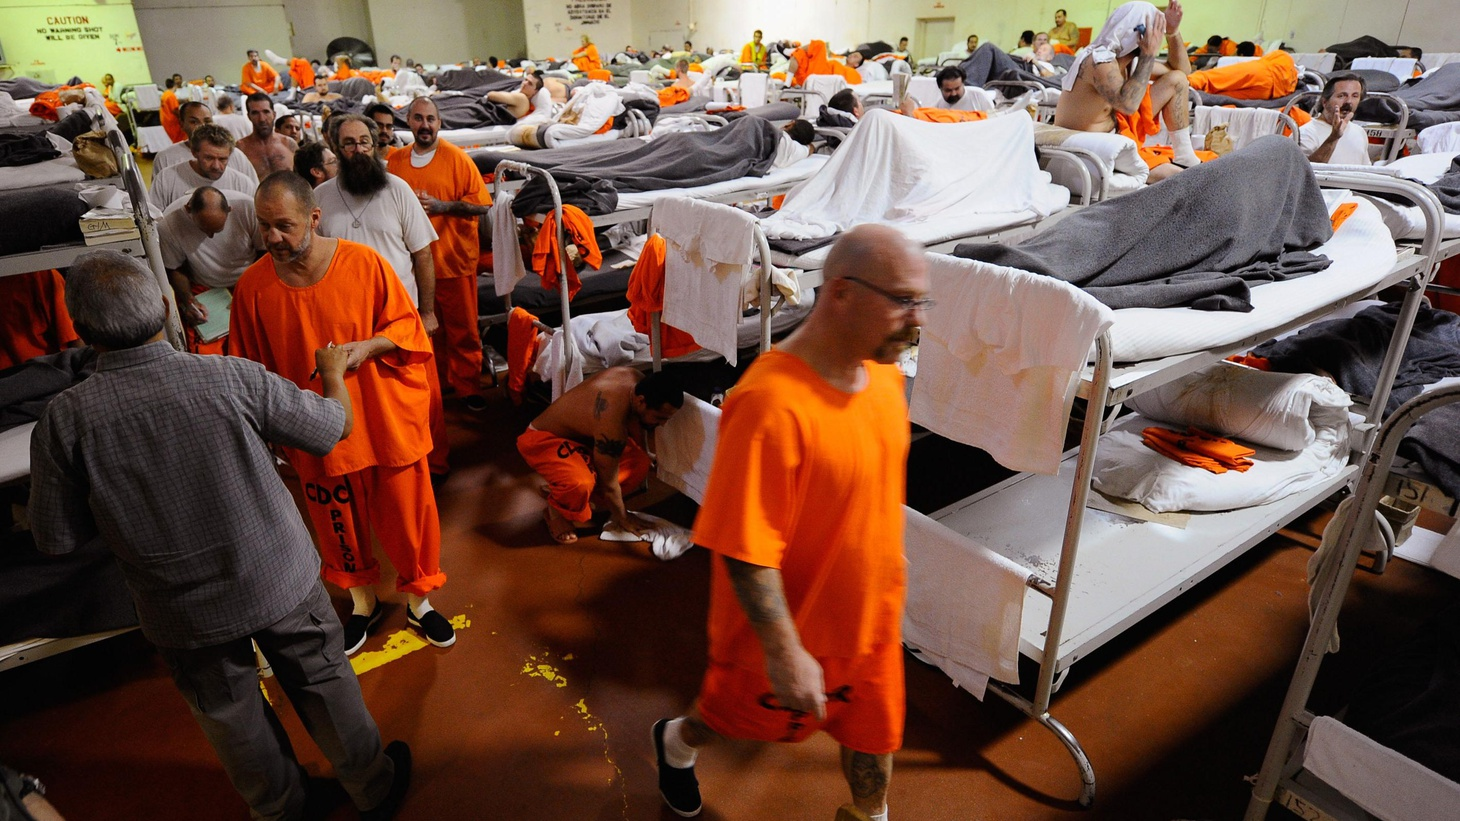 Governor Brown has signed a new law to keep tens of thousands of  non-violent felons in county jails, rather than in hopelessly  overcrowded state prisons...